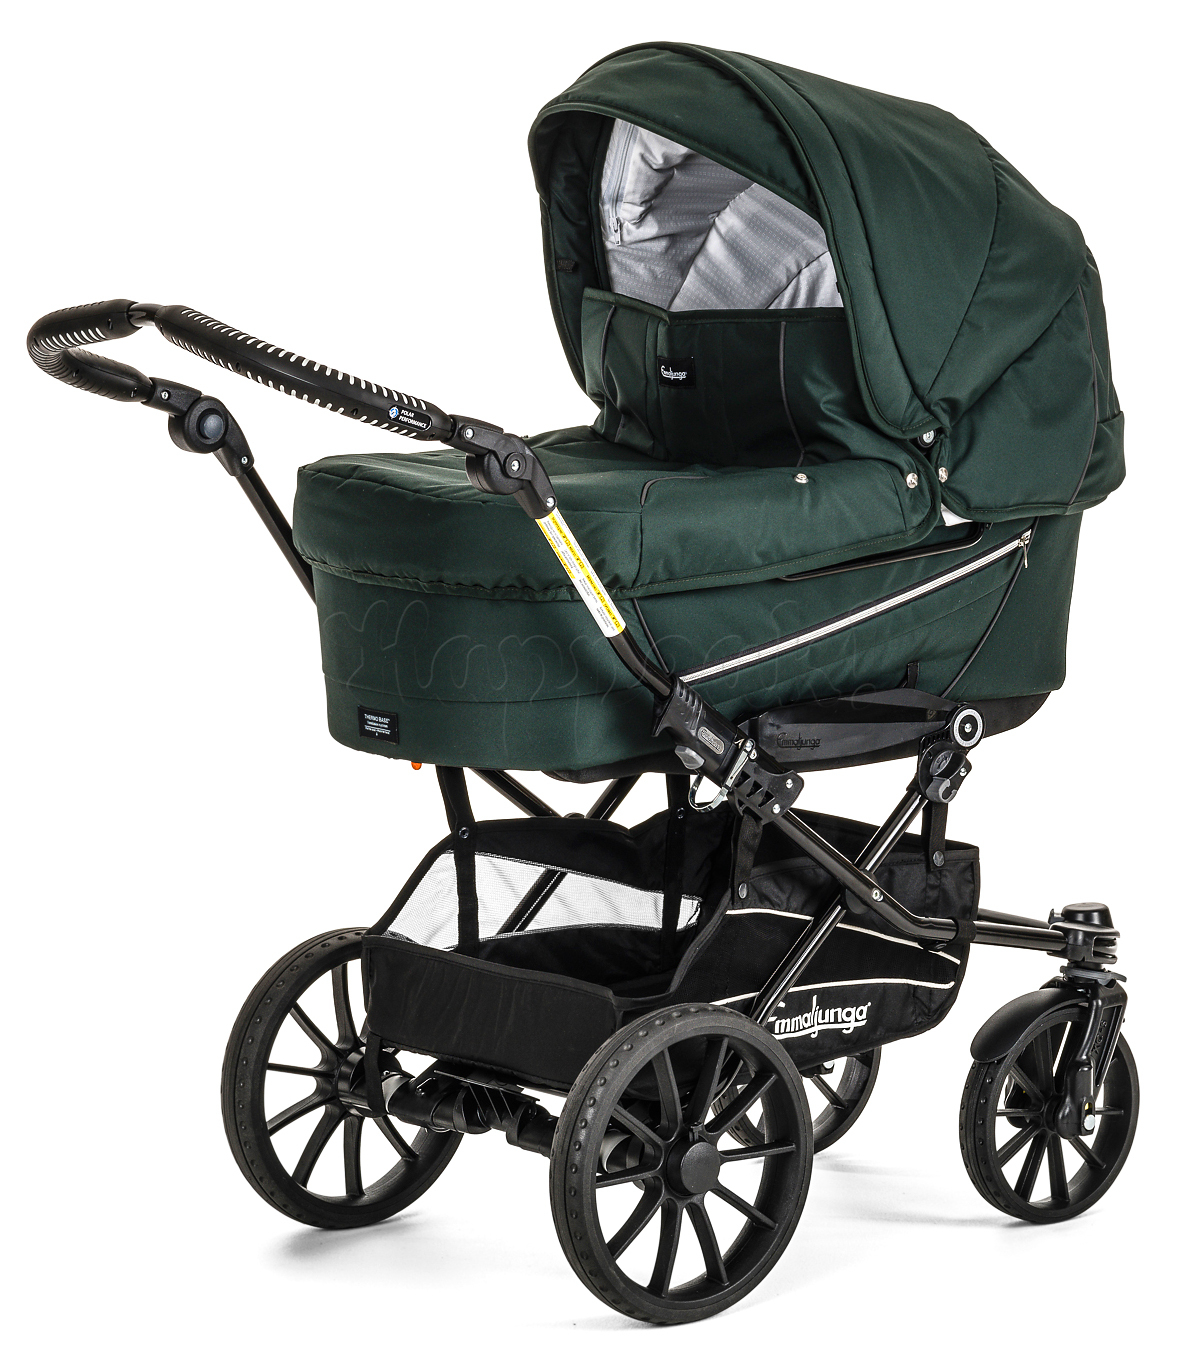 Коляска EMMALJUNGA EDGE DUO COMBI 12605 OXFORD GREEN 2016  2 В 1 на шасси CLASSIC CHROME